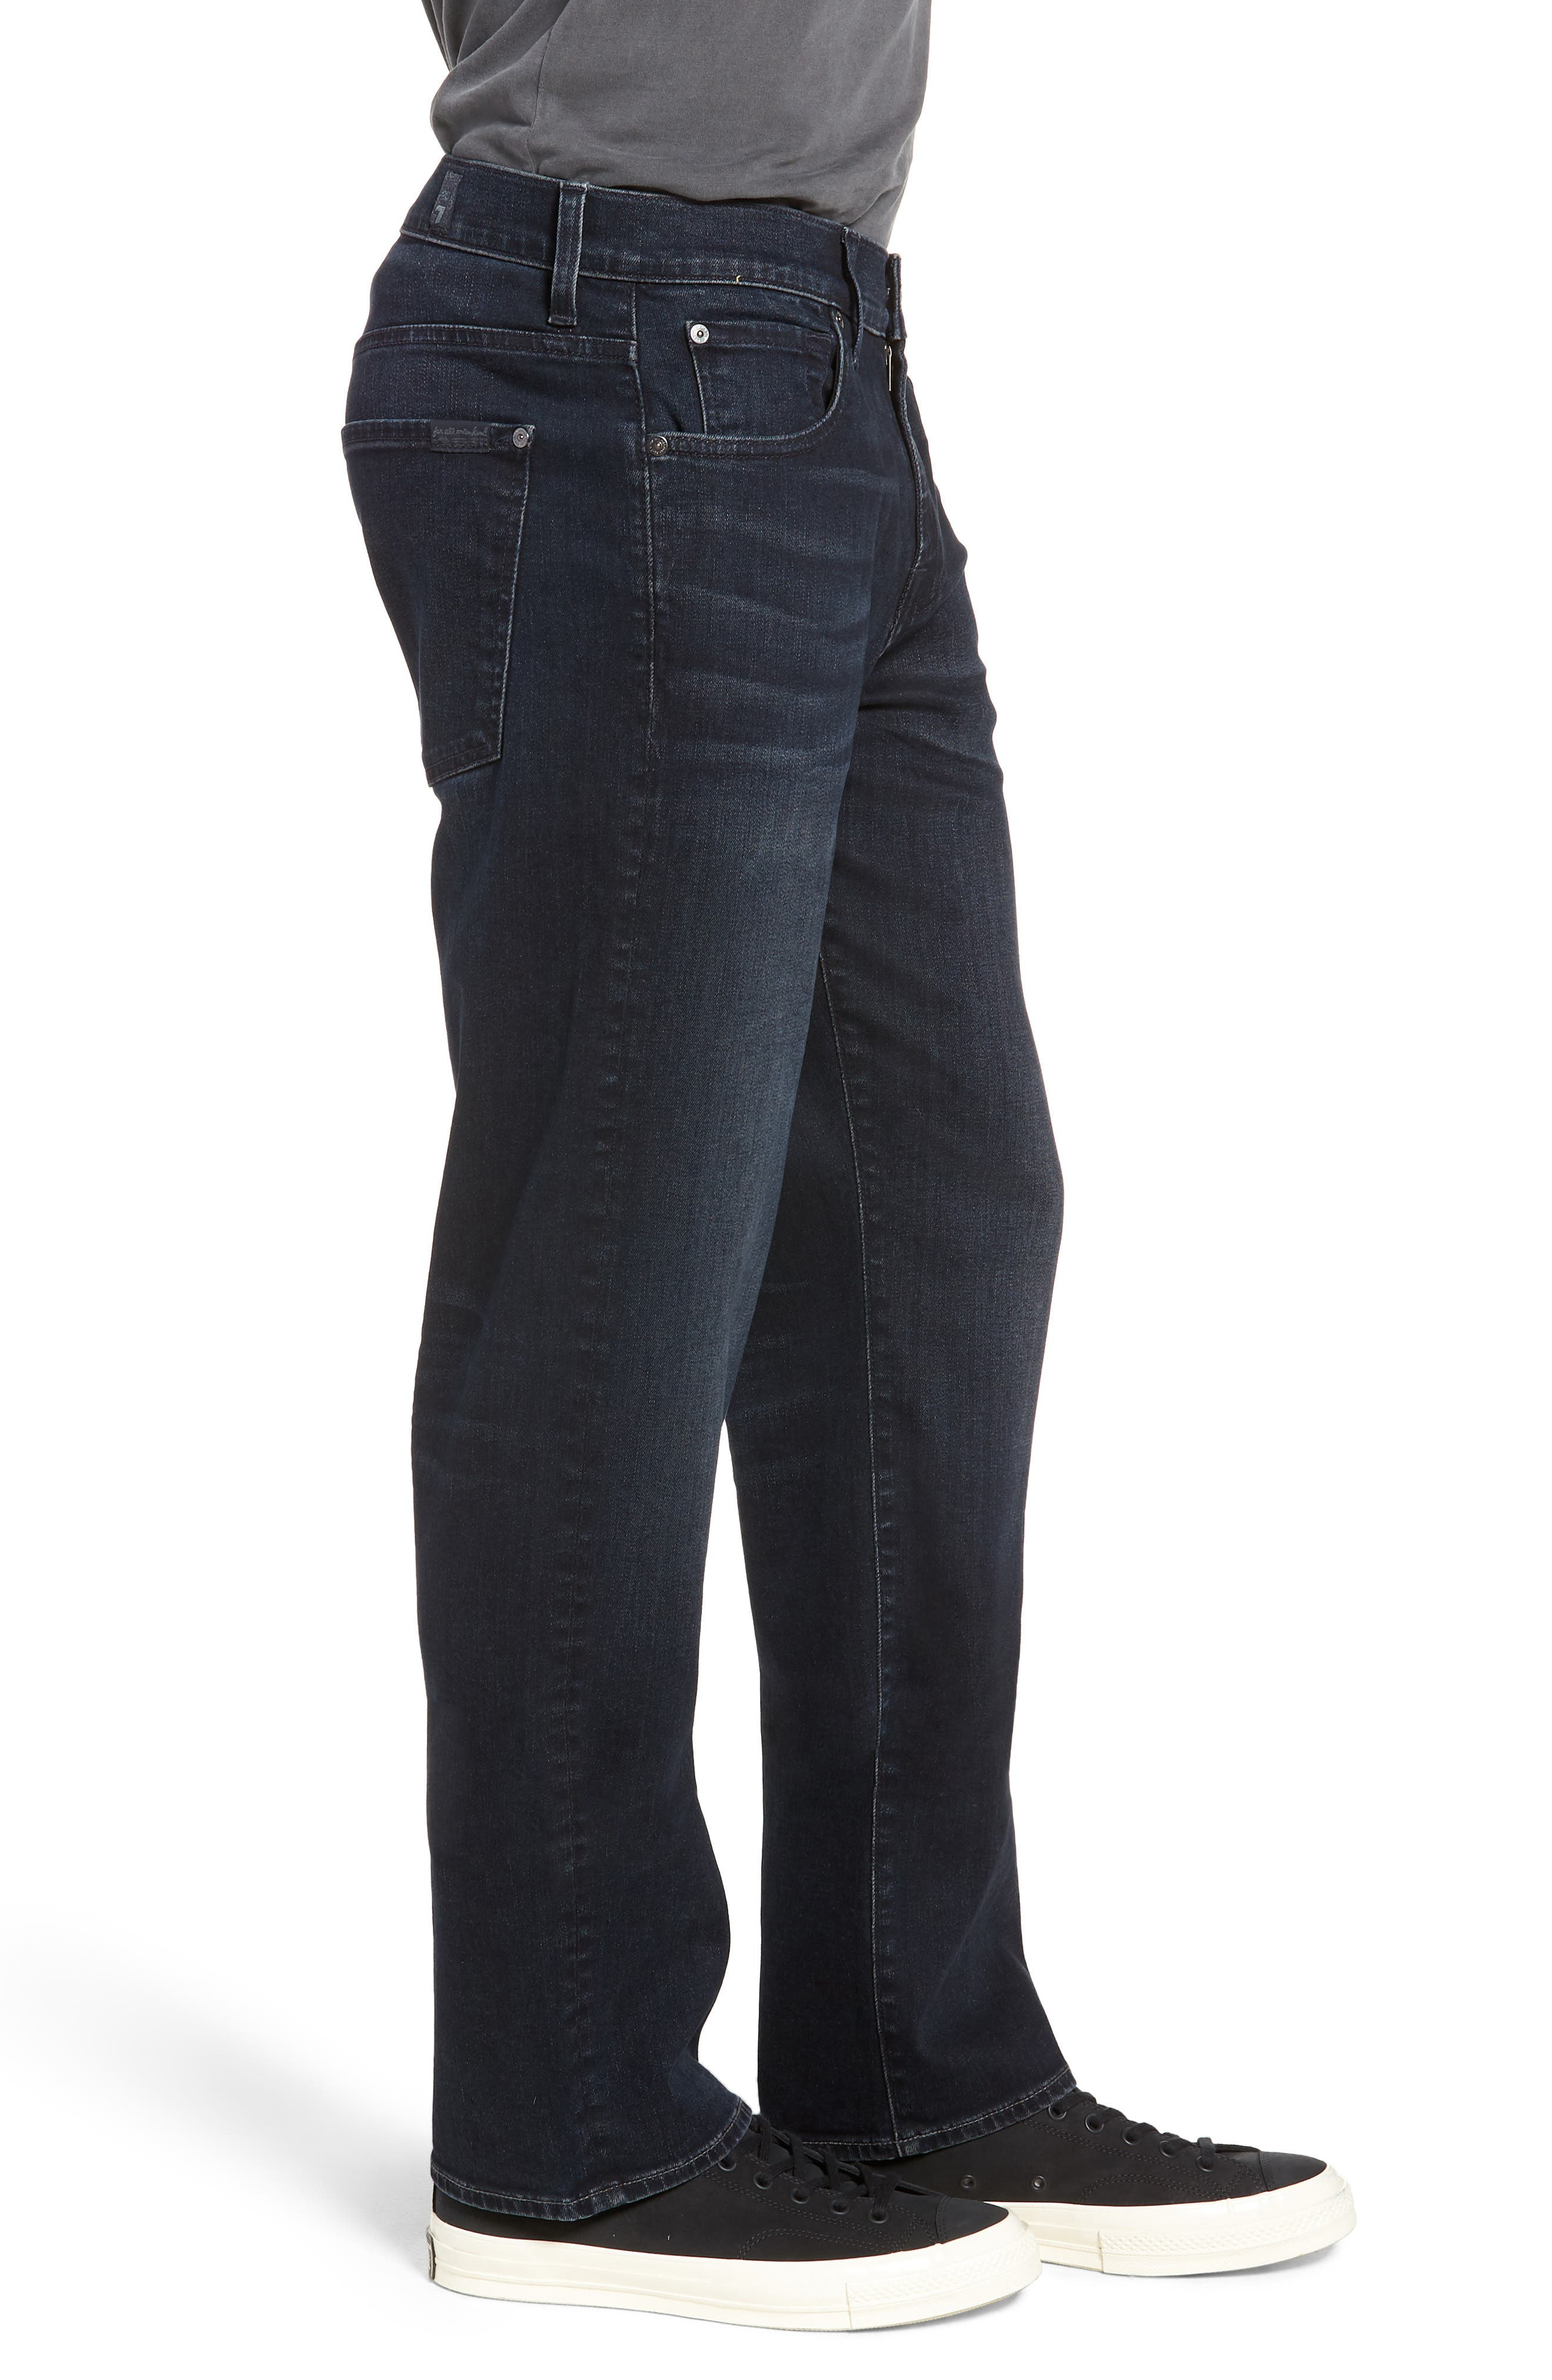 Austyn Relaxed Fit Jeans,                             Alternate thumbnail 3, color,                             400